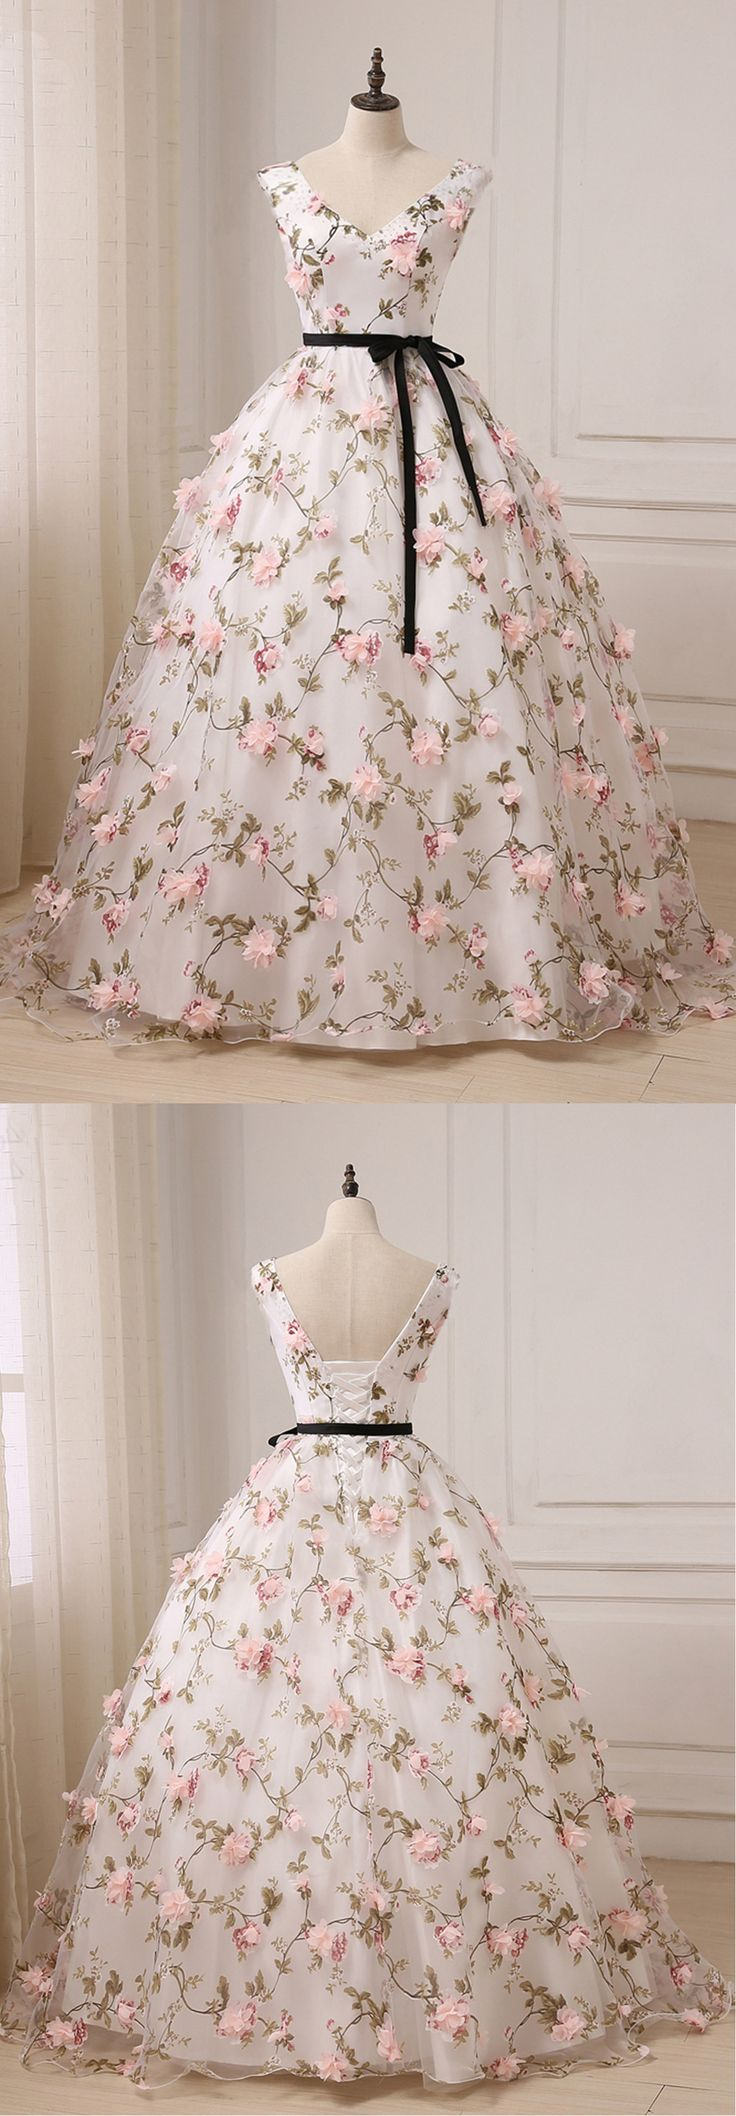 Cute floral tulle long prom dress